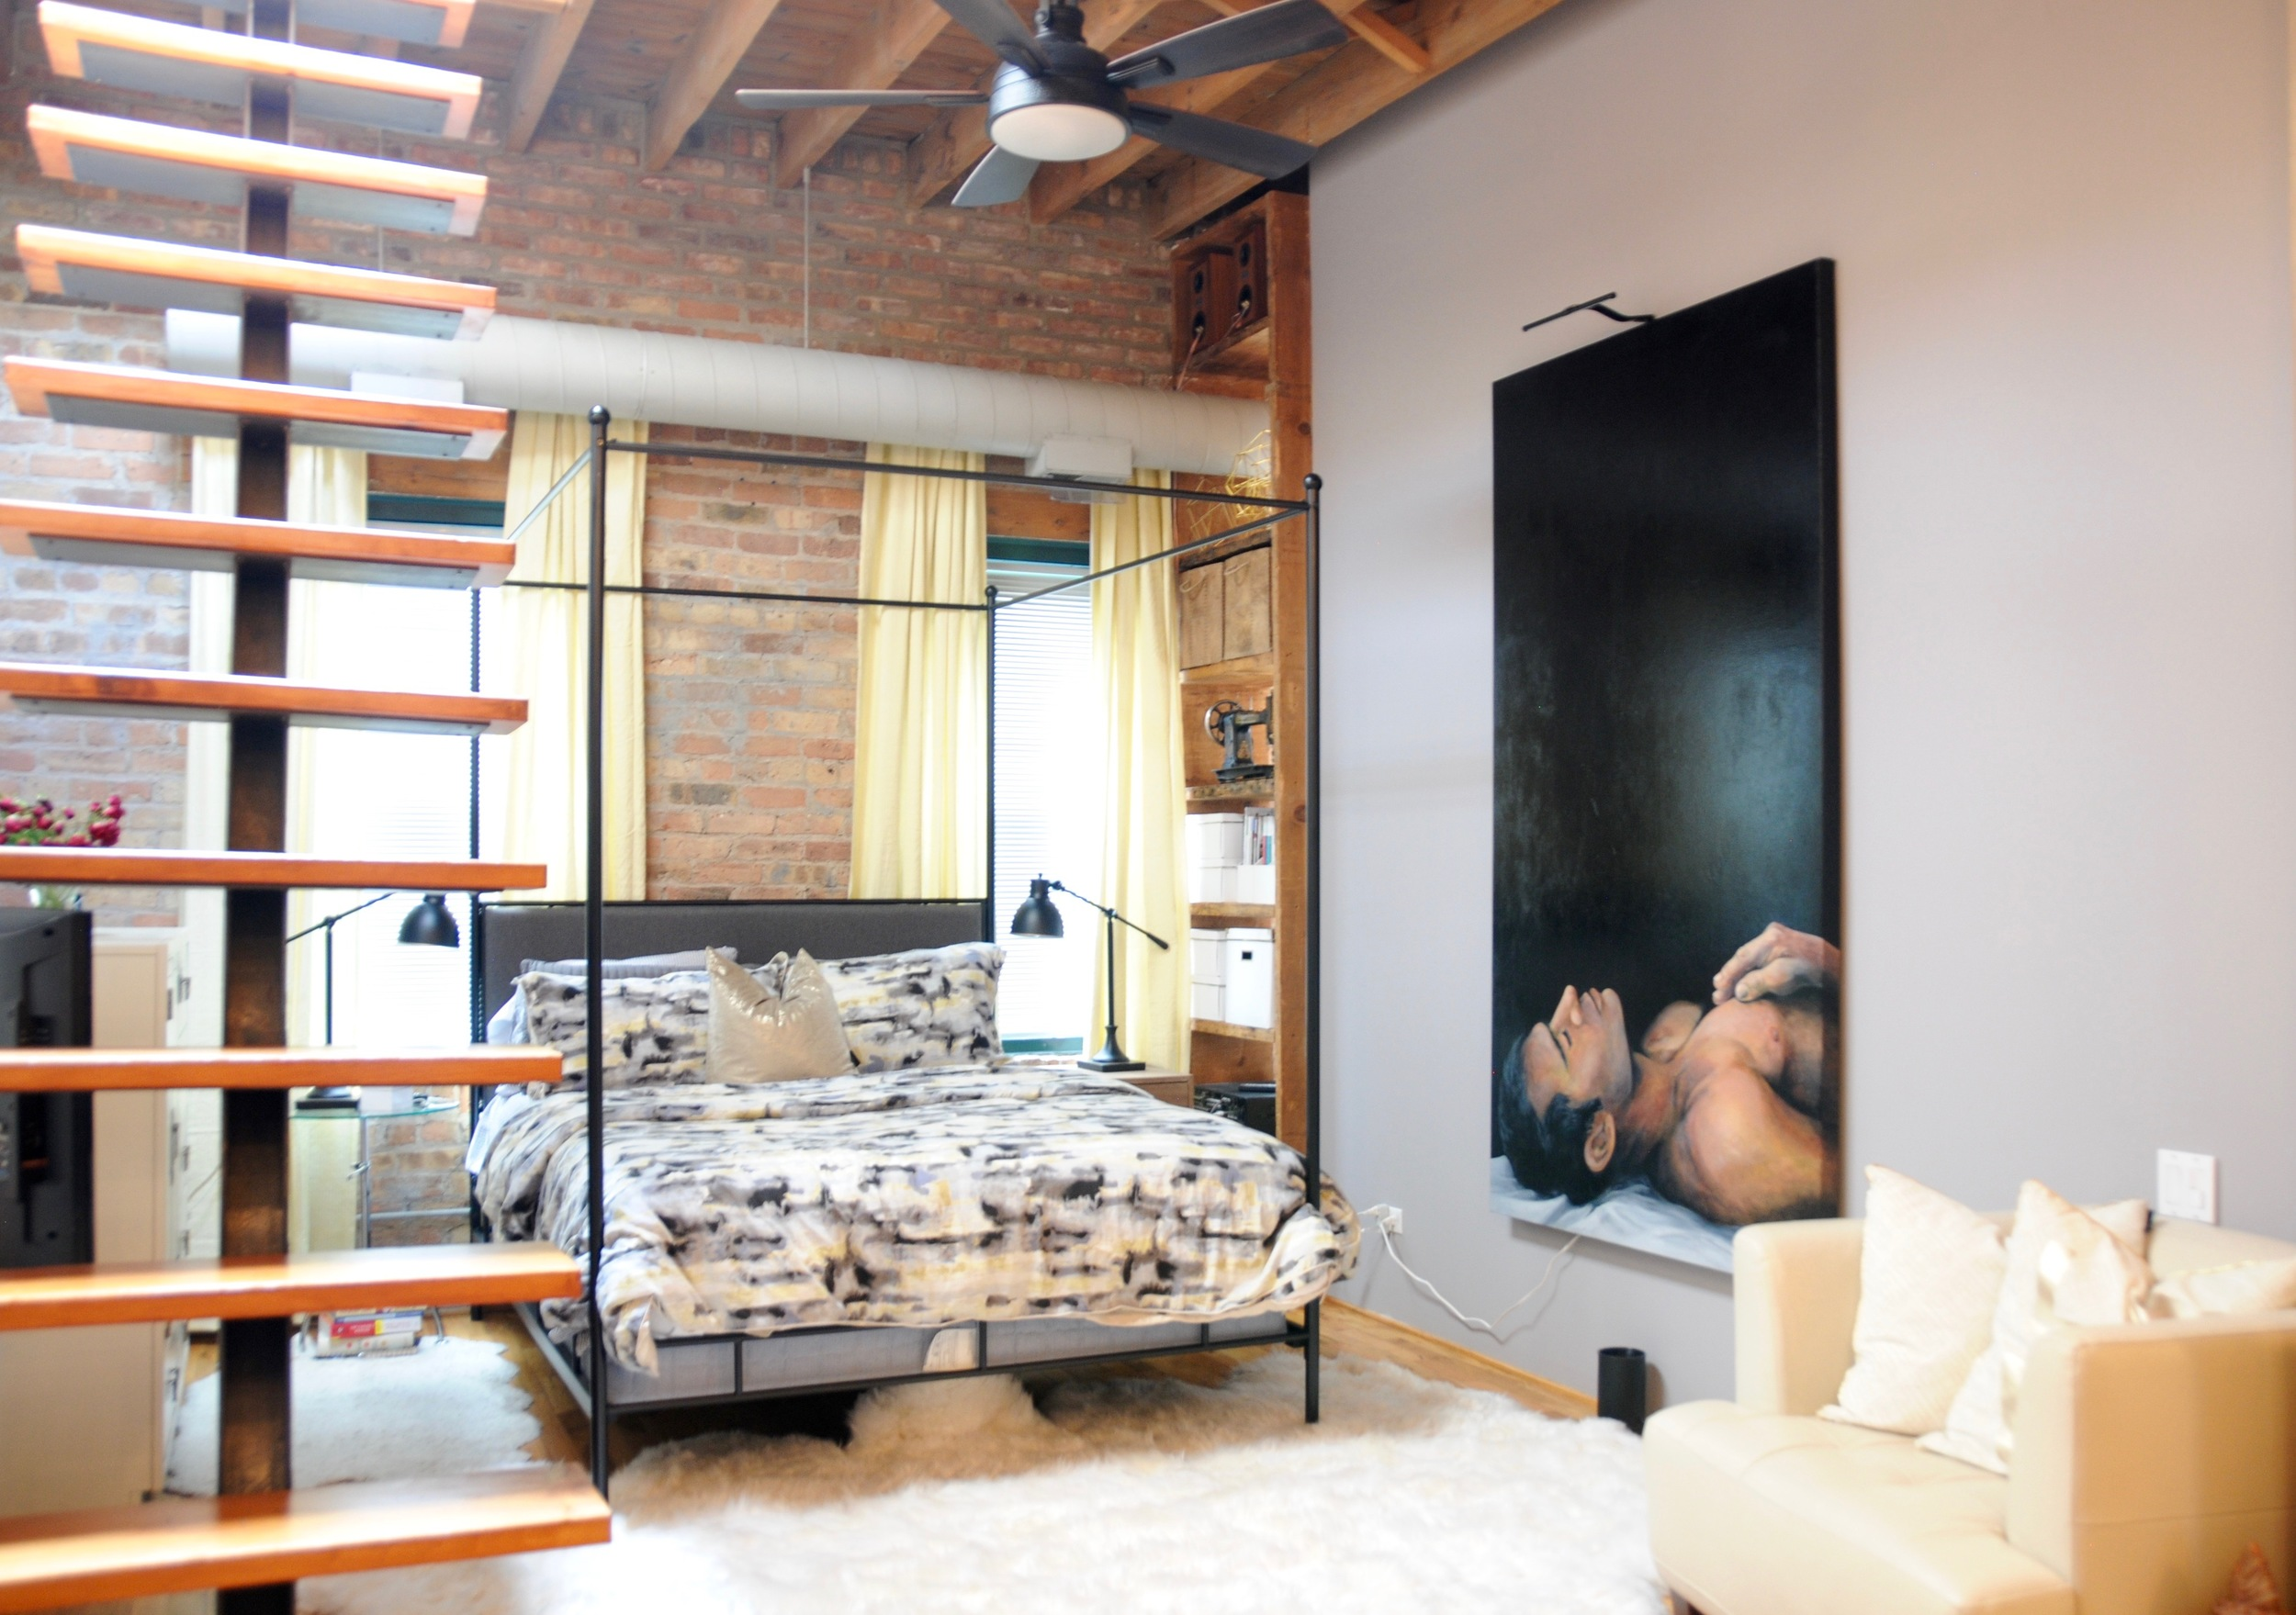 The owners bedroom with floating stairs to the clouds and an unobstructed view of Chicago.